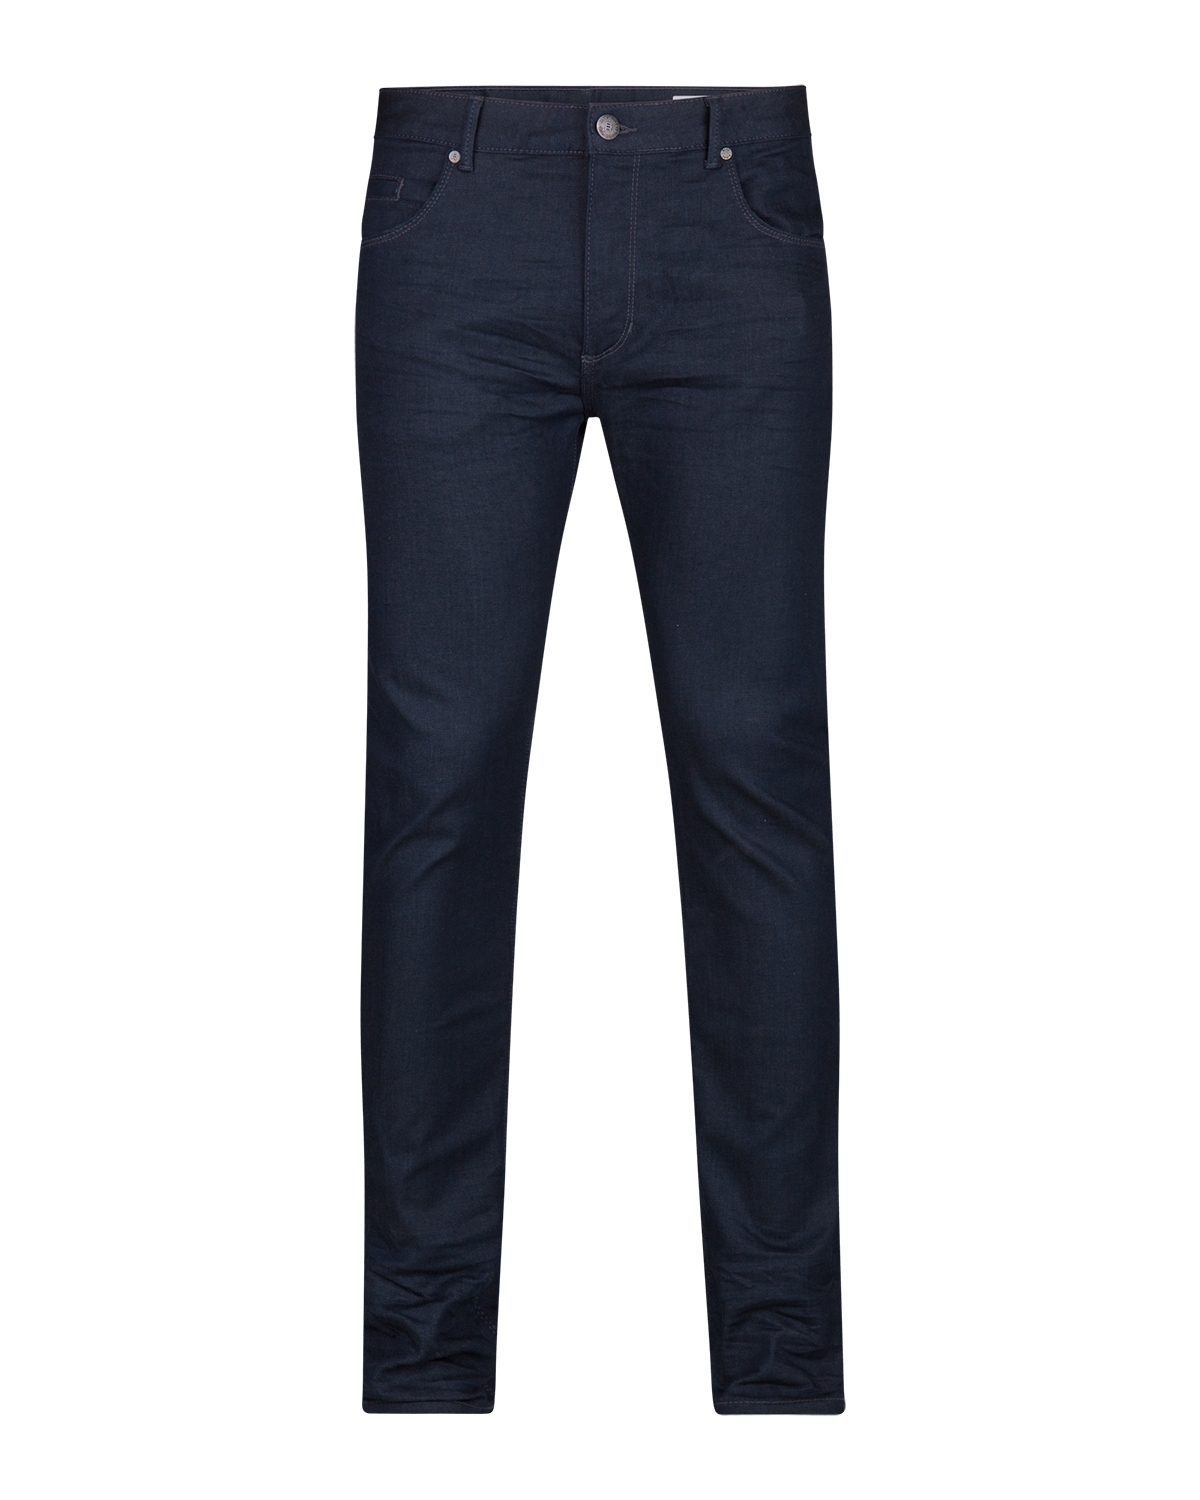 JEANS SKINNY TAPERED SUPER STRETCH HOMME_JEANS SKINNY TAPERED SUPER STRETCH HOMME, Bleu marine